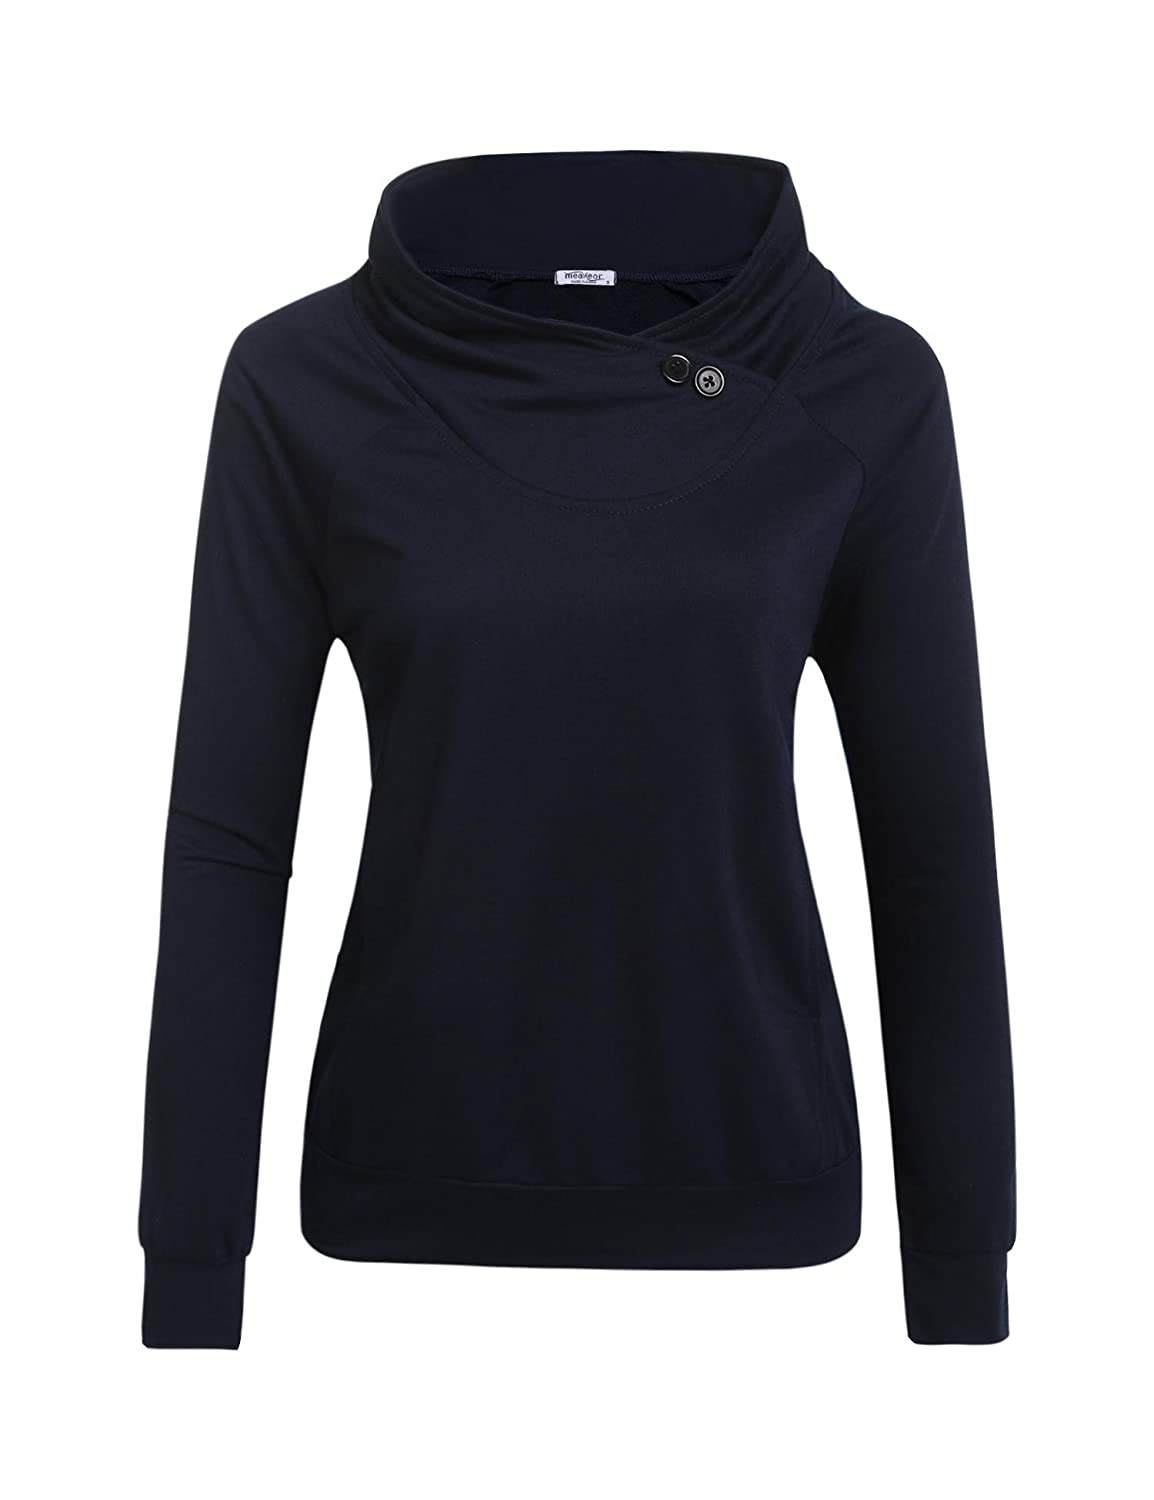 MYEDO Women Fashion Cowl Neck Long Sleeve Solid Button Pockets Tops Fashion Hoodies